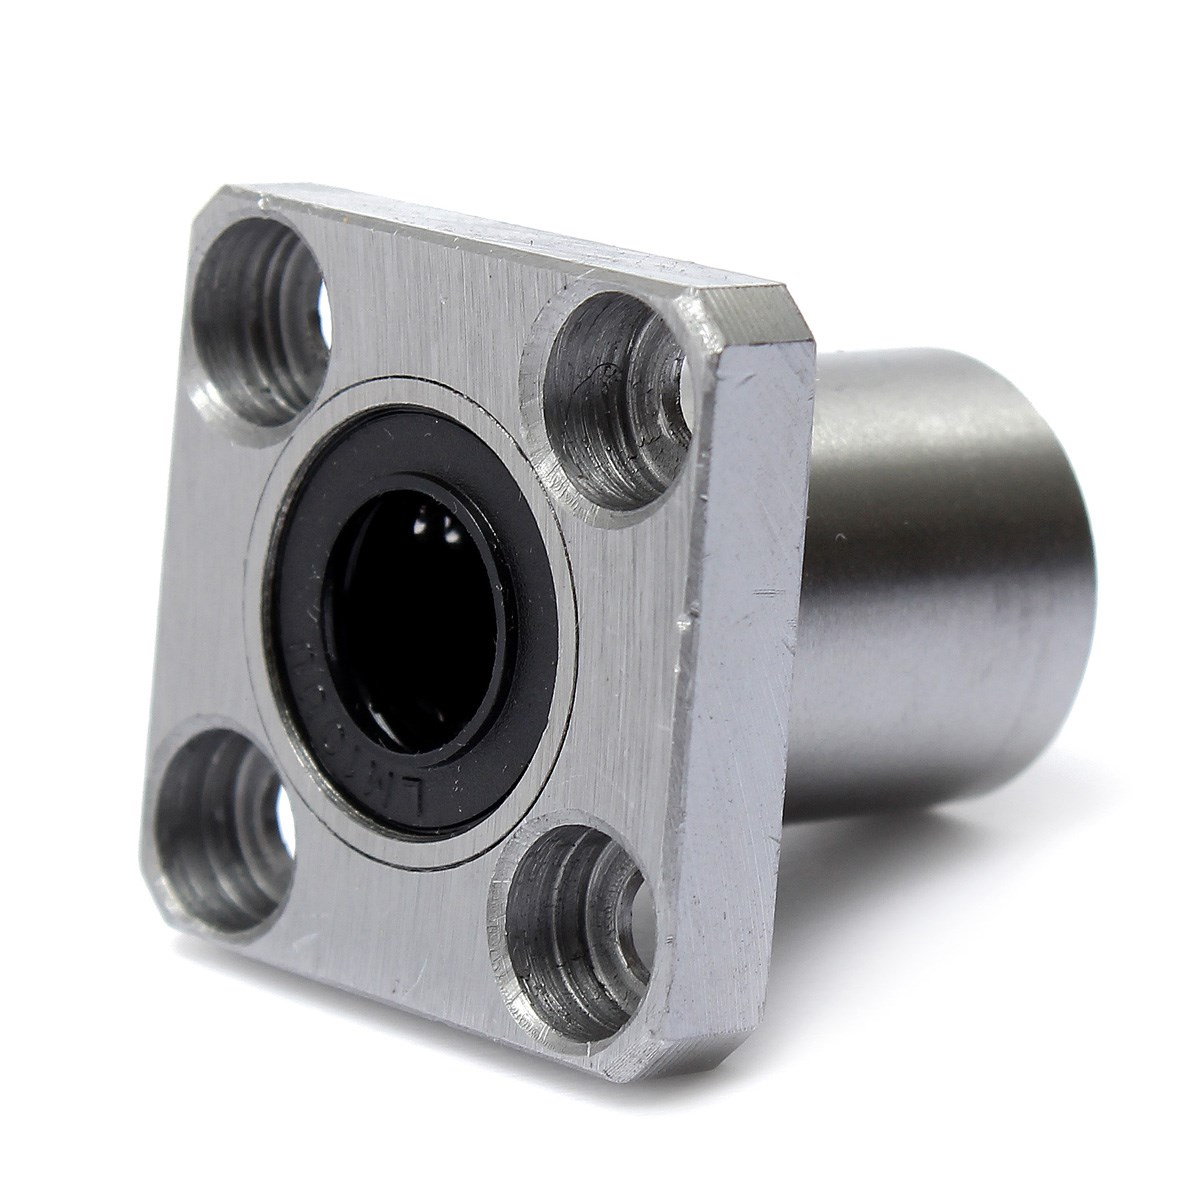 Linear Bearing Lmk10uu 10mm Square Flange Bushing Indian Bracket Sk10 Untuk Shaft Vertical Hover To Zoom